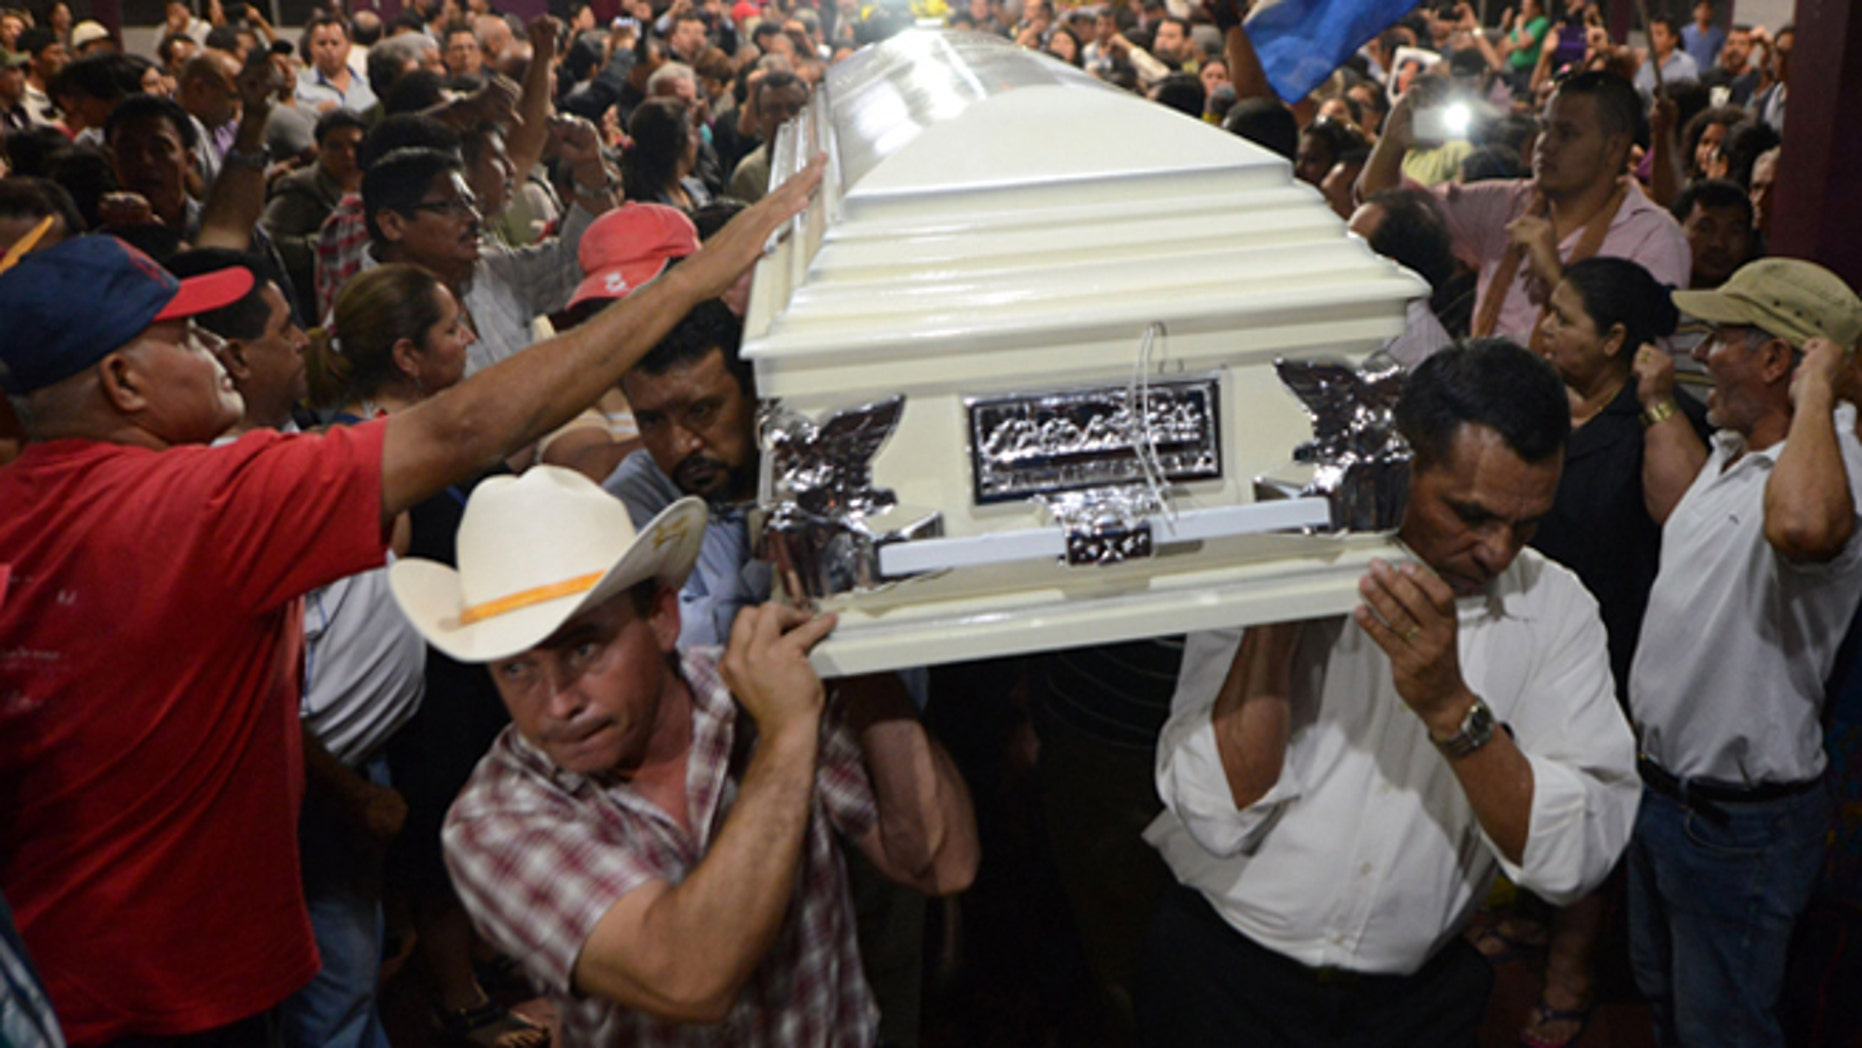 Relatives and friends carry the coffin of murdered indigenous activist Berta Caceres during her funeral in La Esperanza, 200 km northwest of Tegucigalpa, on March 3, 2016. Caceres, a respected environmentalist who won the prestigious Goldman Prize last year for her outspoken advocacy, was murdered in her home Thursday, her family said. AFP PHOTO /ORLANDO SIERRA / AFP / ORLANDO SIERRA        (Photo credit should read ORLANDO SIERRA/AFP/Getty Images)